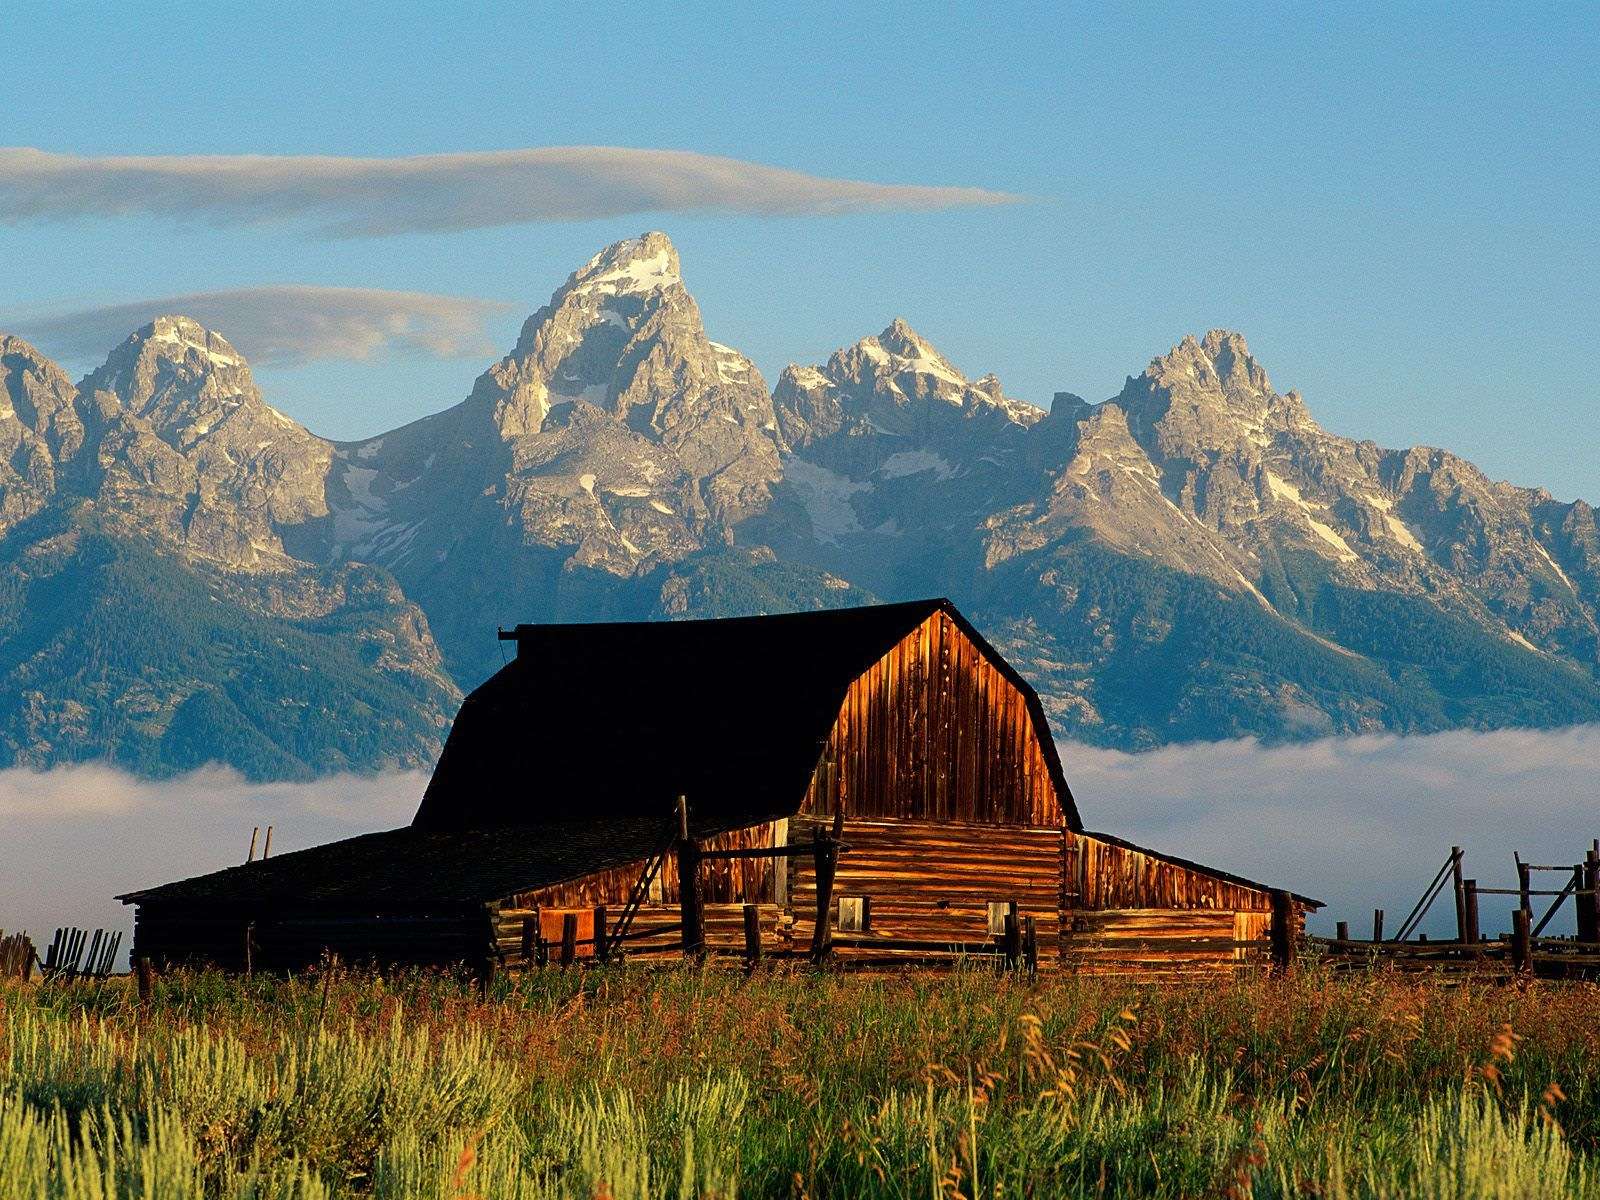 Jackson hole in summer wyoming picture jackson hole in for Towns near jackson hole wyoming